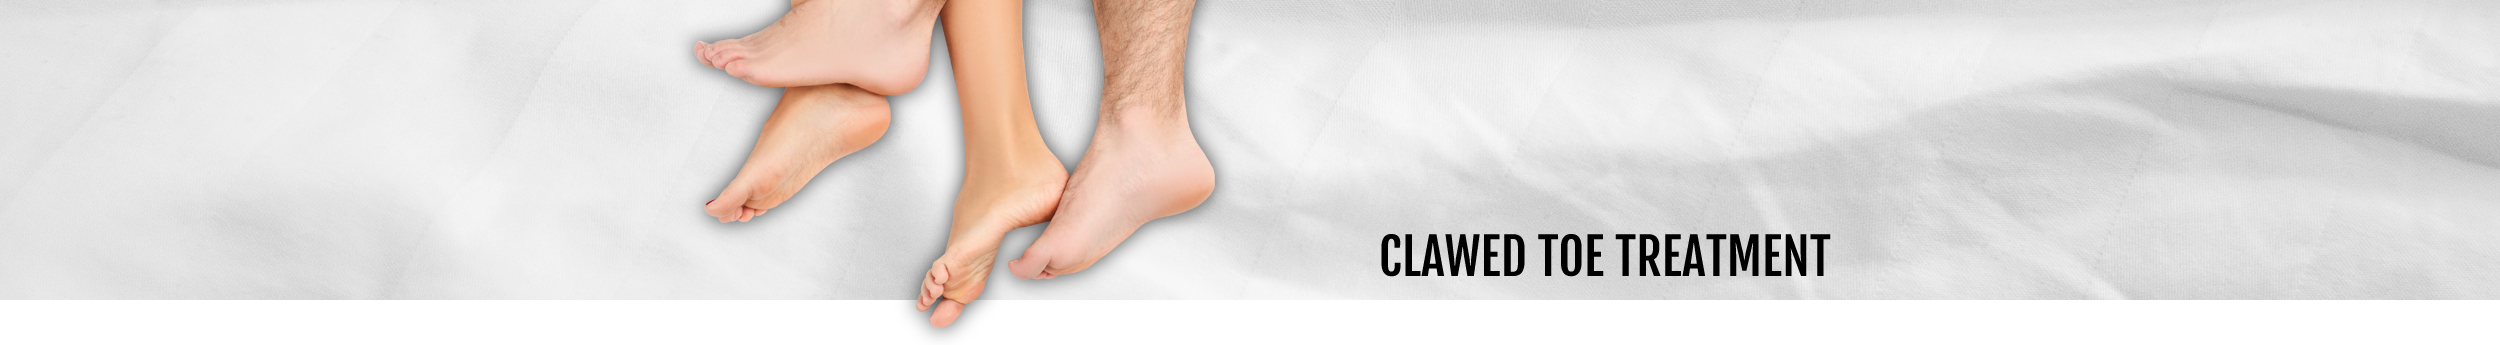 Clawed Toe treatment header at The Walk IN Foot Clinic in central London